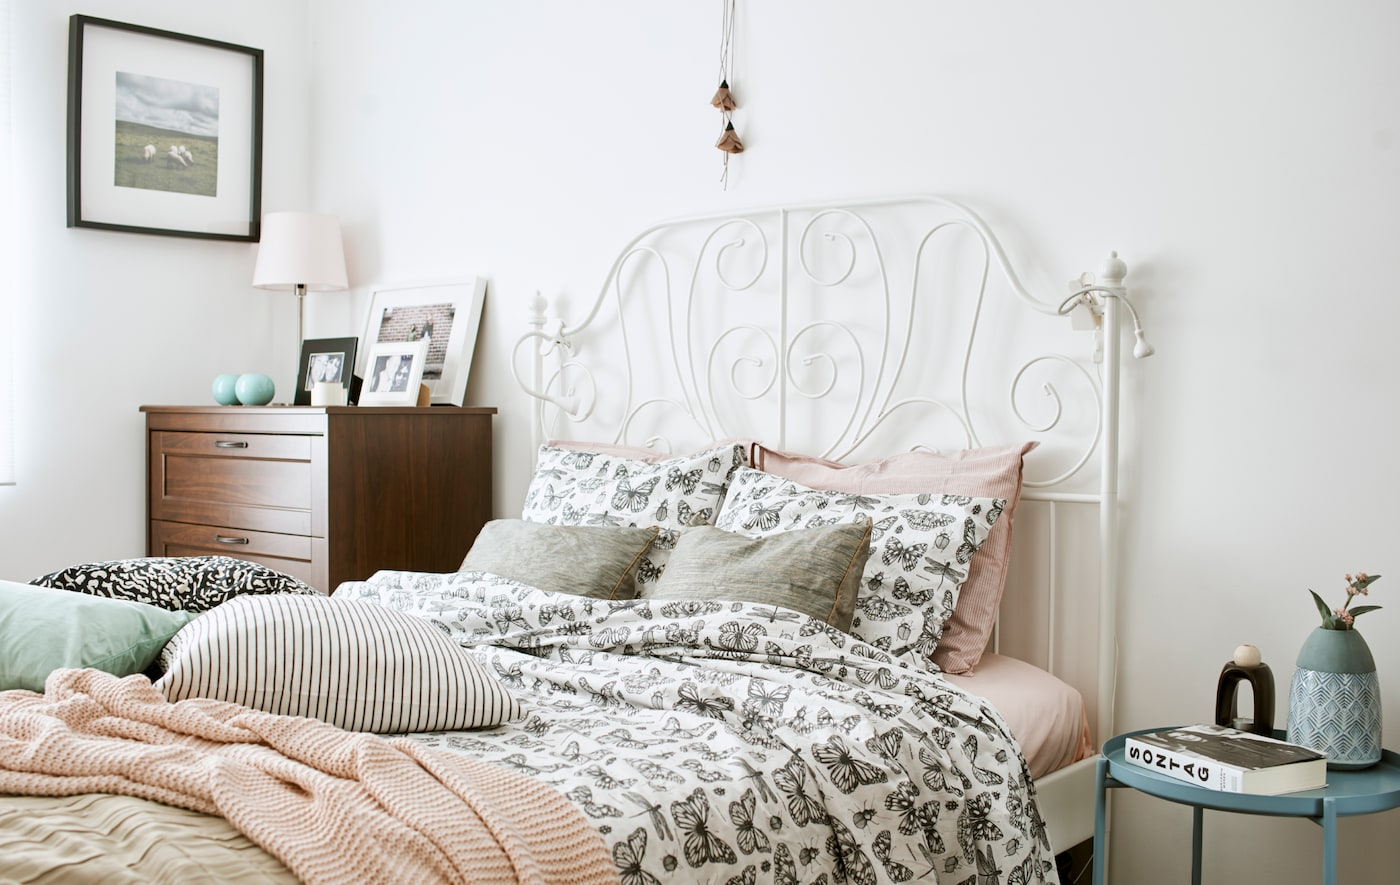 Use textiles to give your bedroom a fresh new look - IKEA